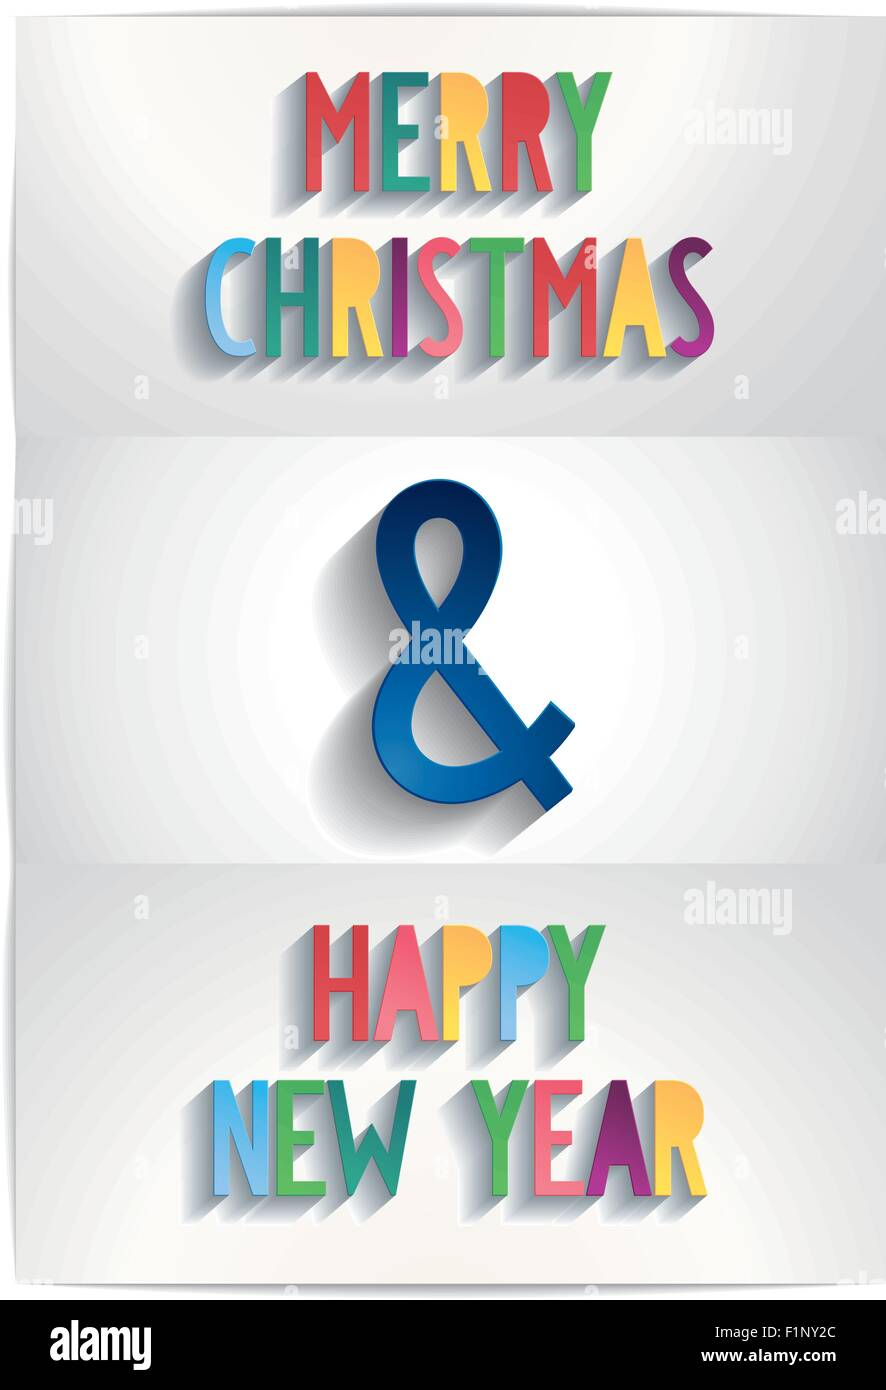 Merry Christmas And A Happy New Year Stock Vector Images - Alamy